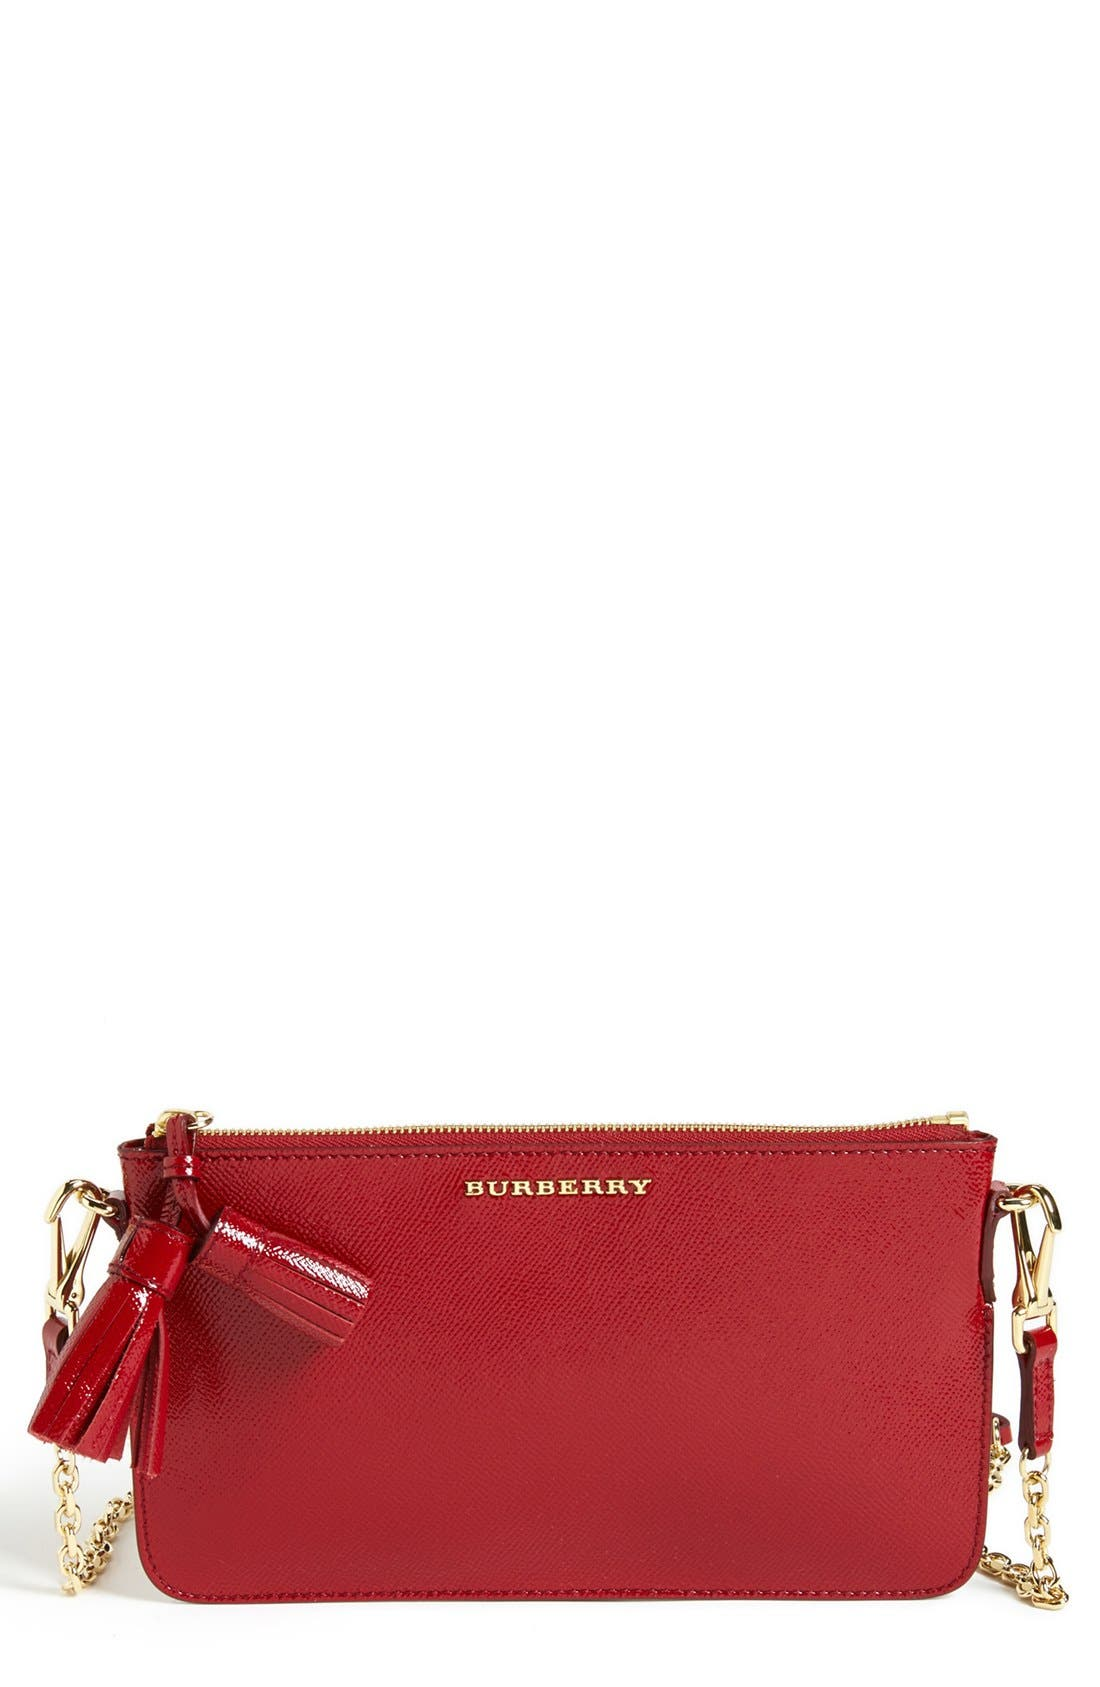 Main Image - Burberry 'Peyton' Crossbody Bag